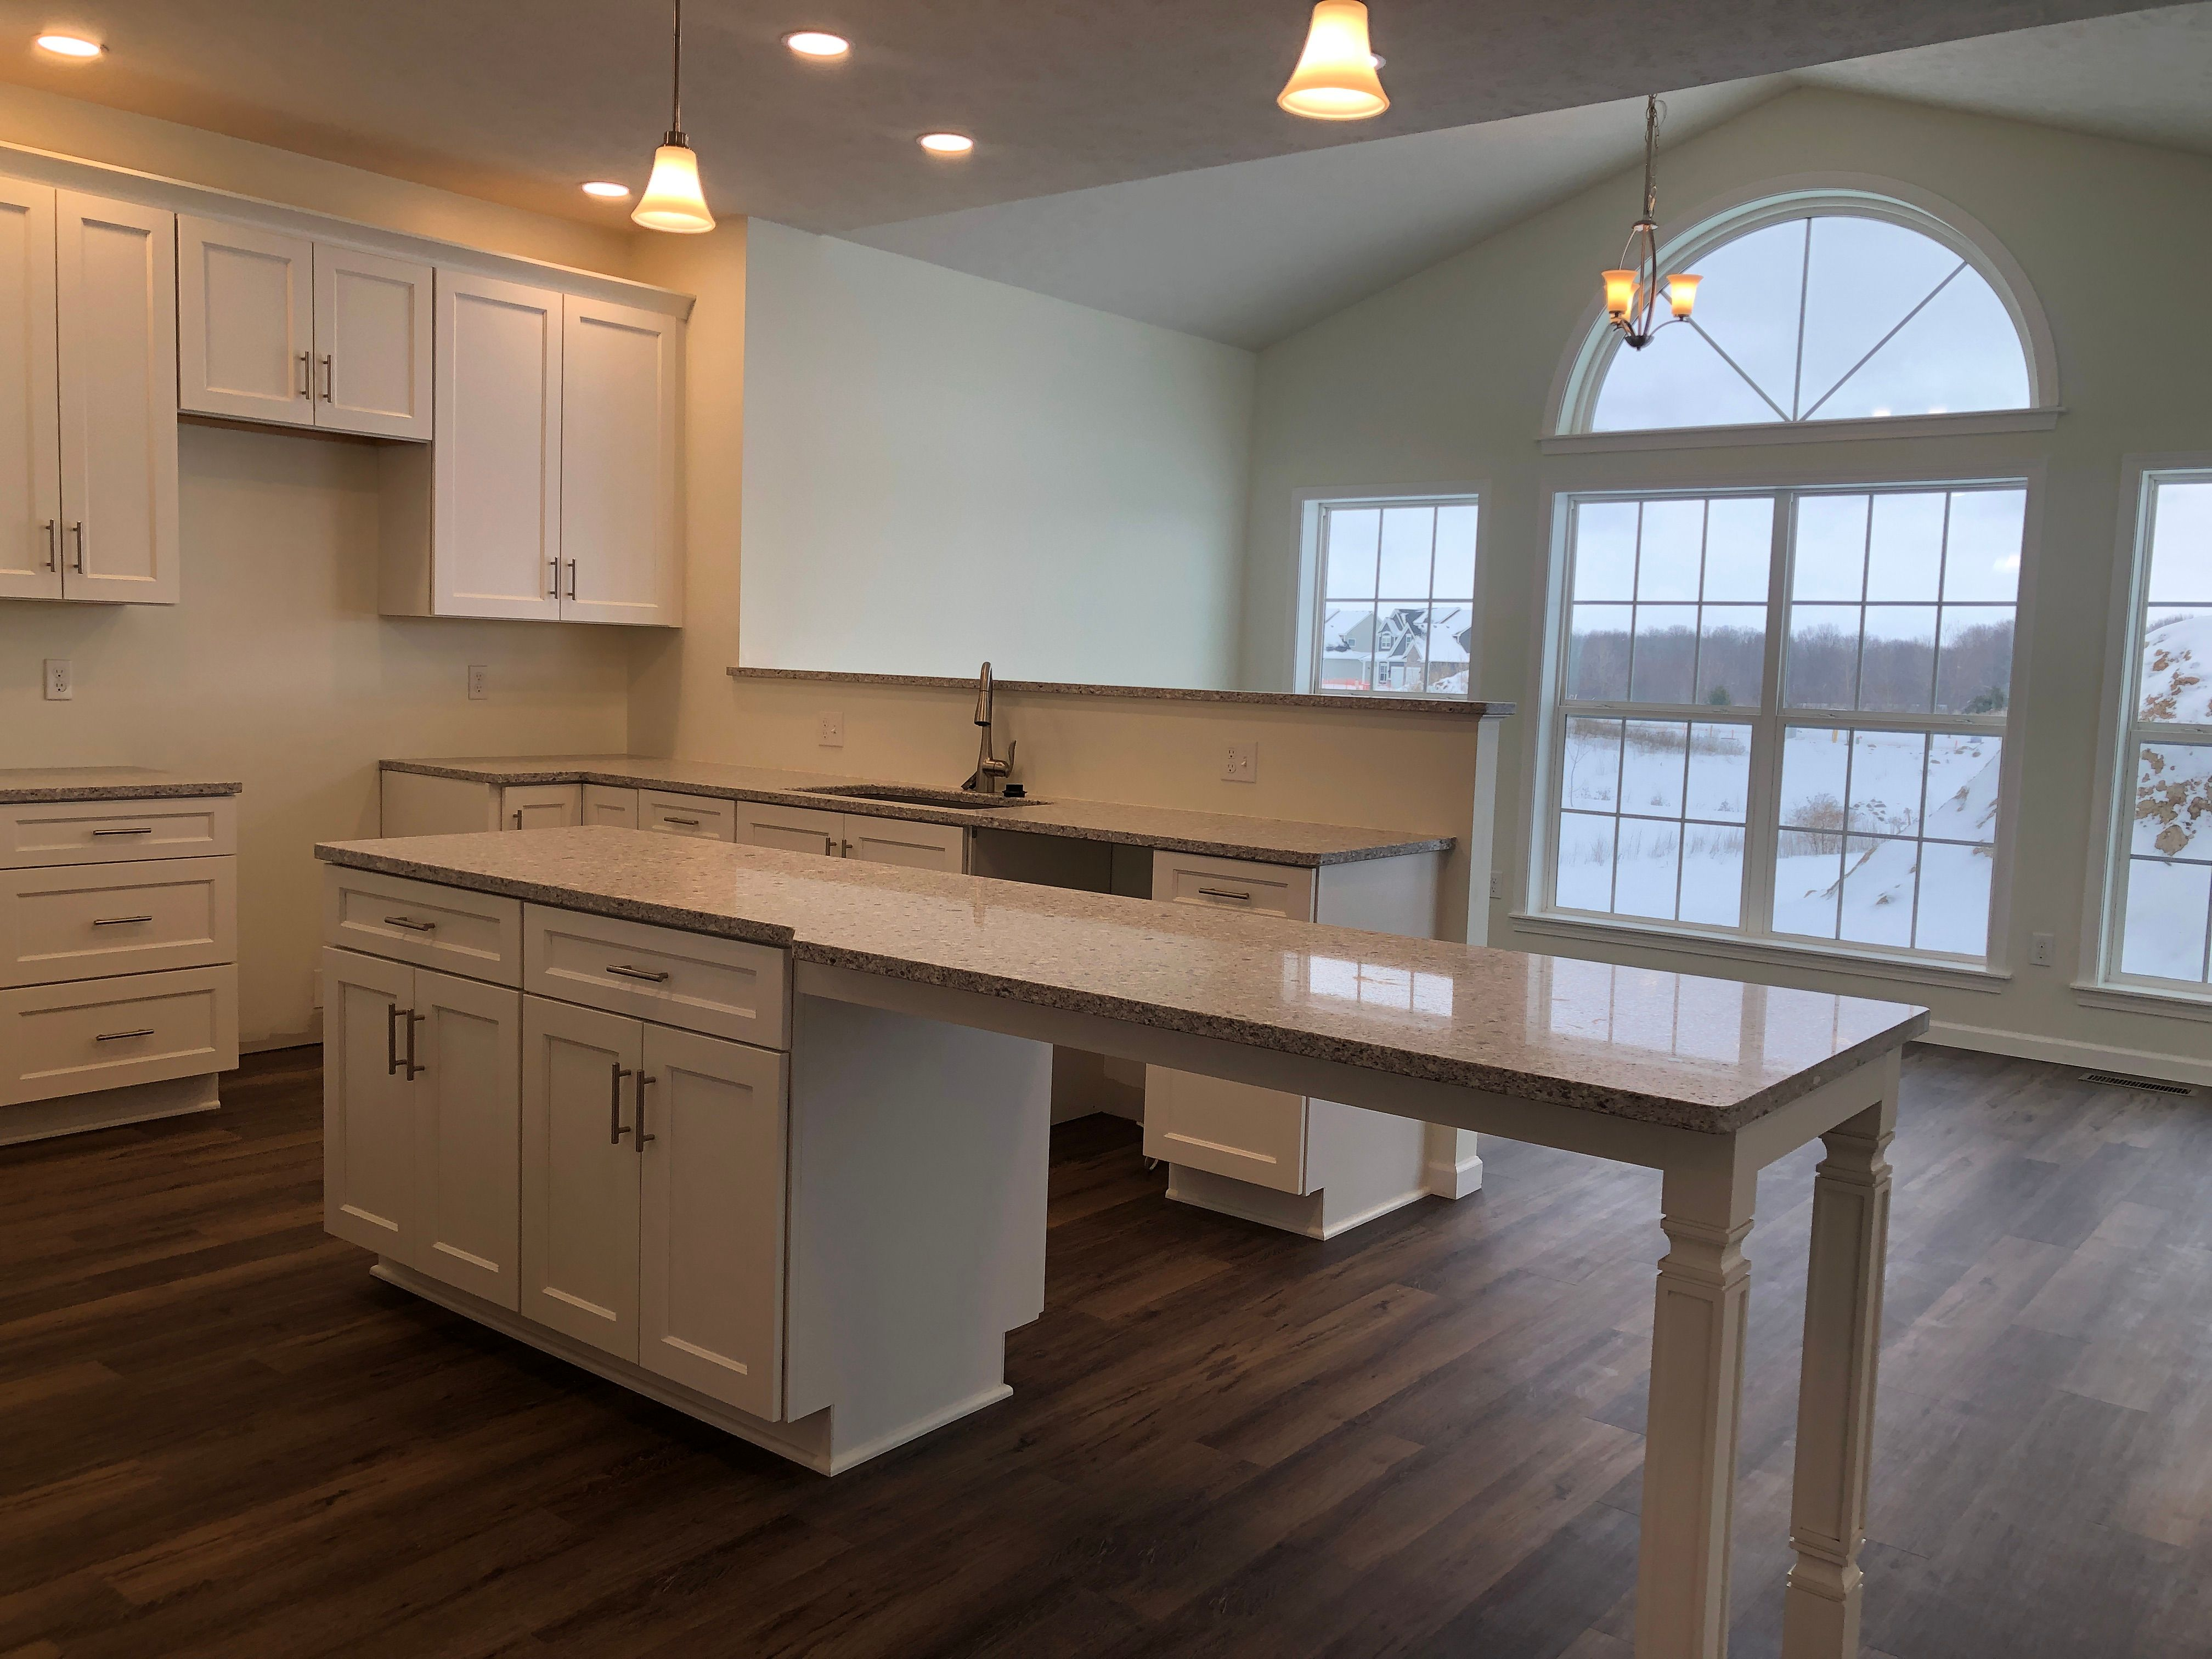 Kitchen featured in the Beckham By Faber Builders in Rochester, NY